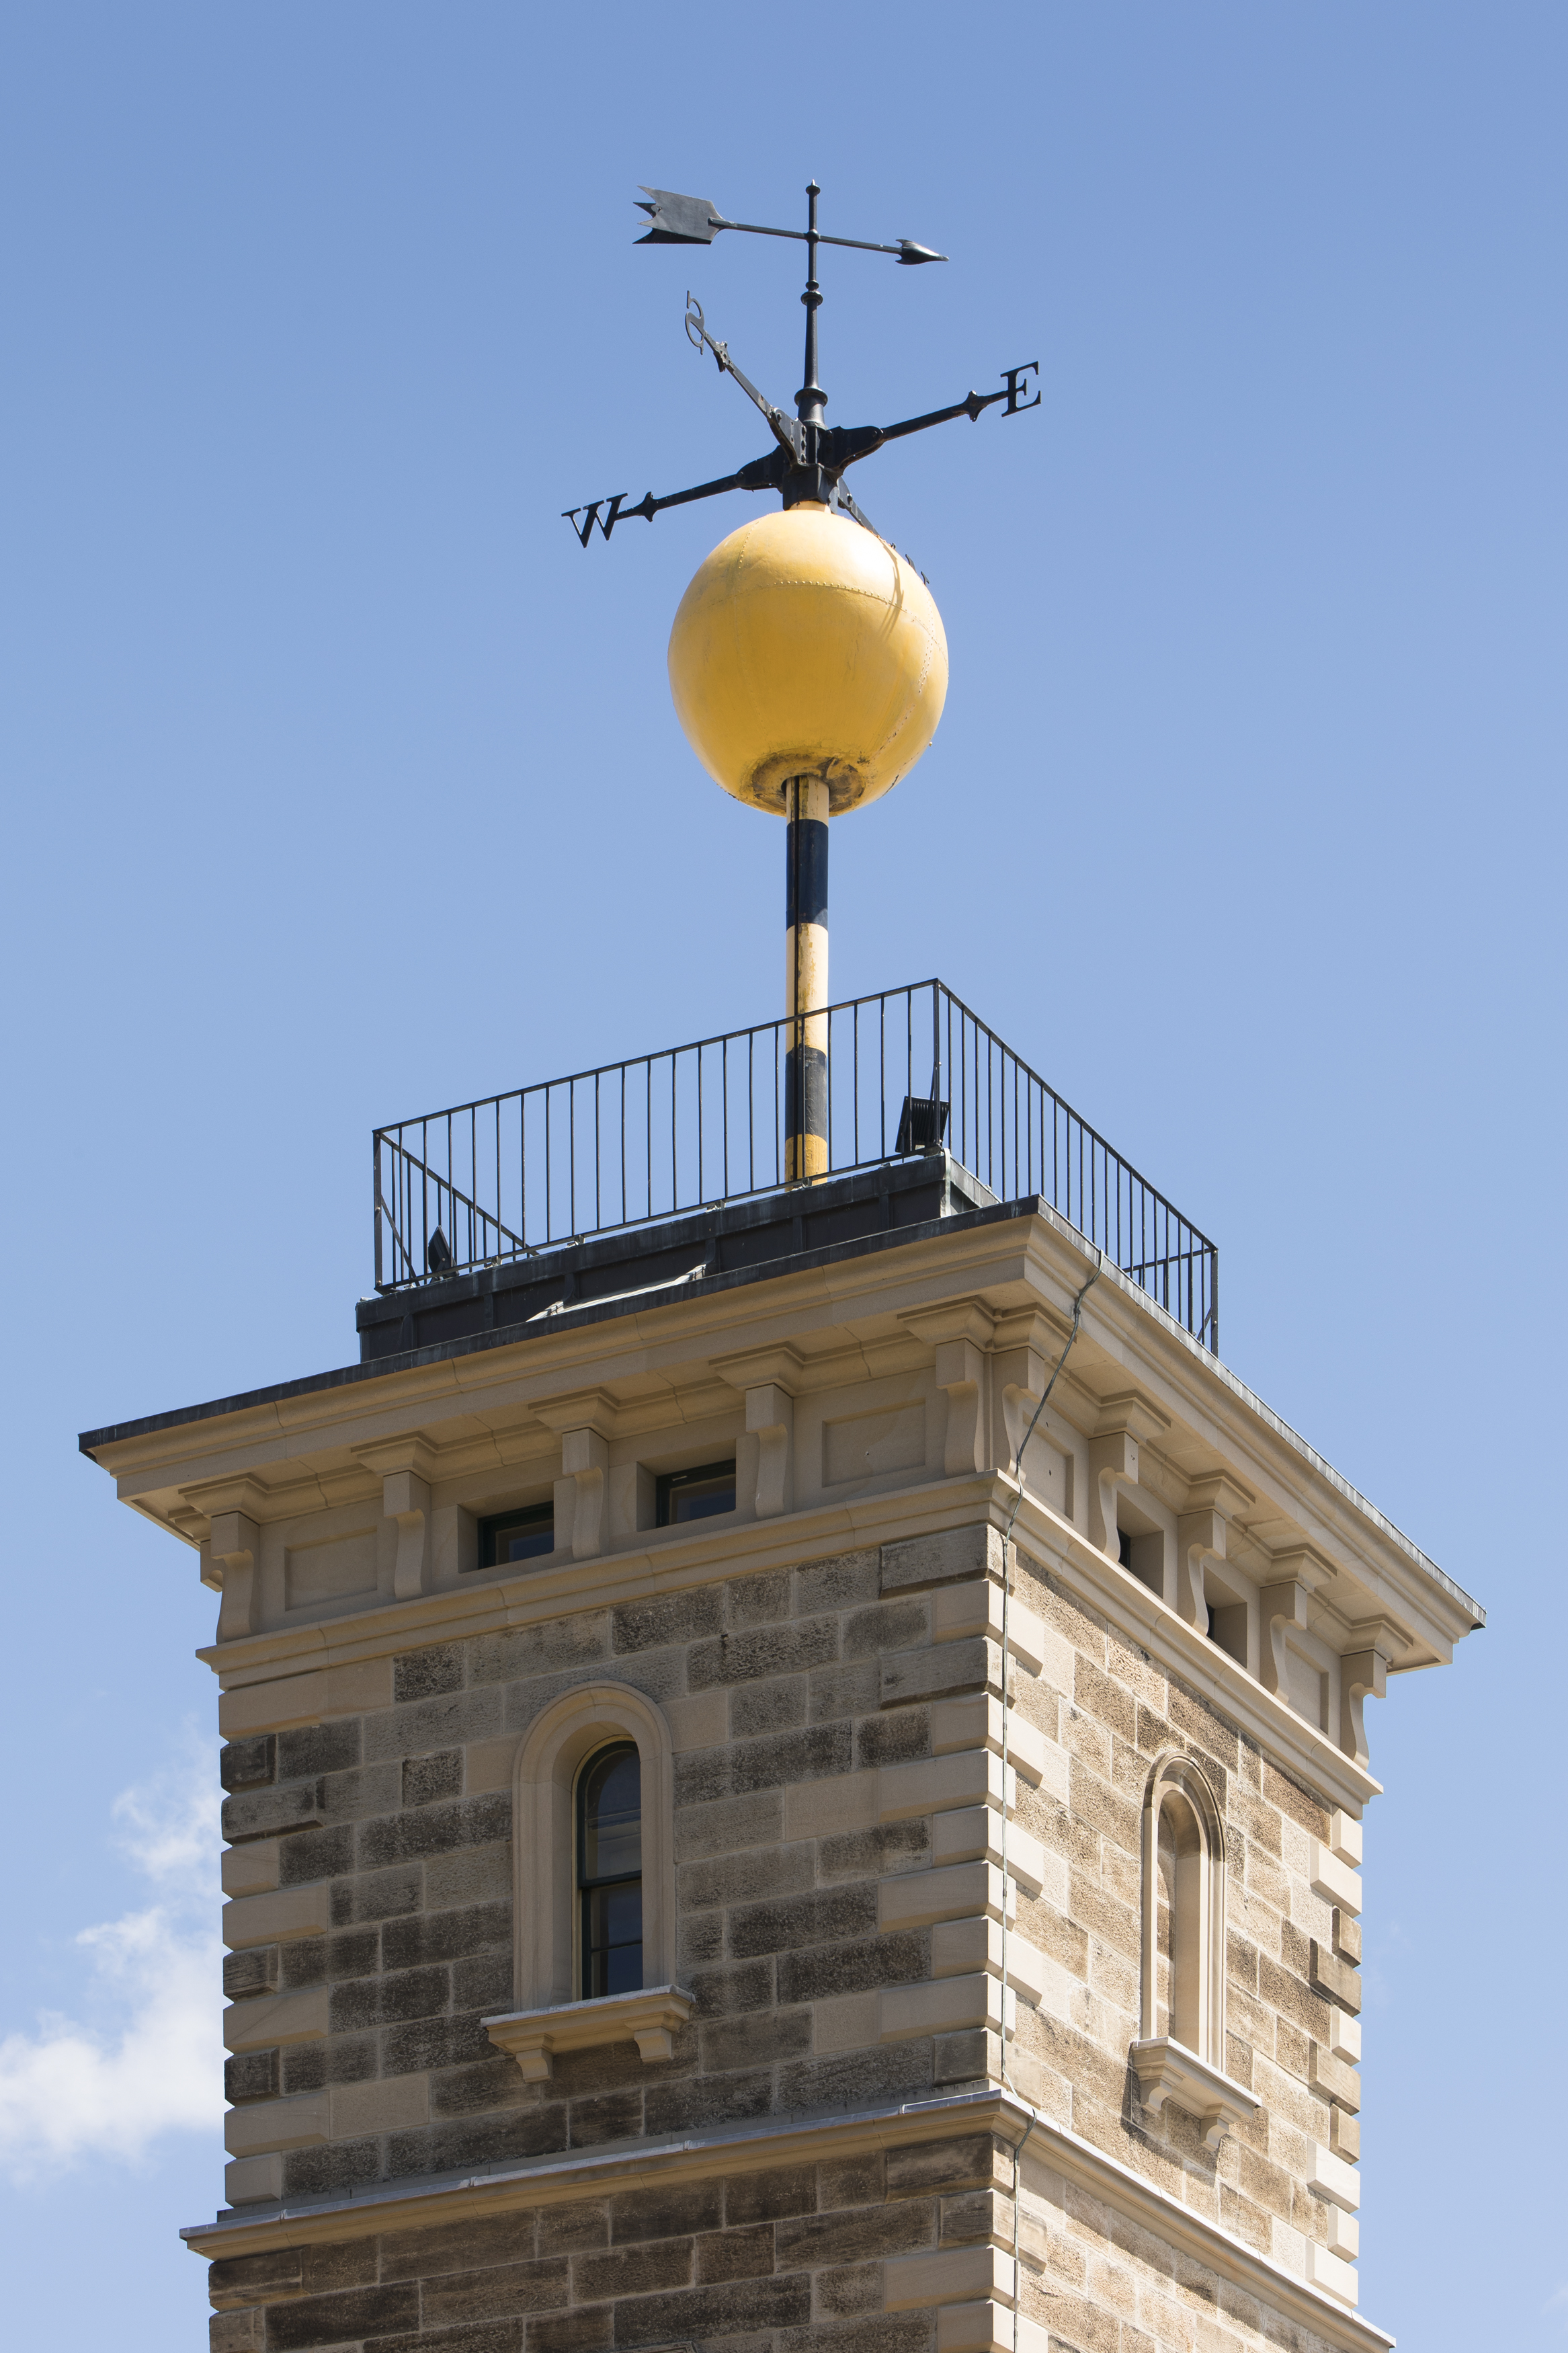 A large yellow metal call sitting on top of a sandstone tower with a weather vane above it.